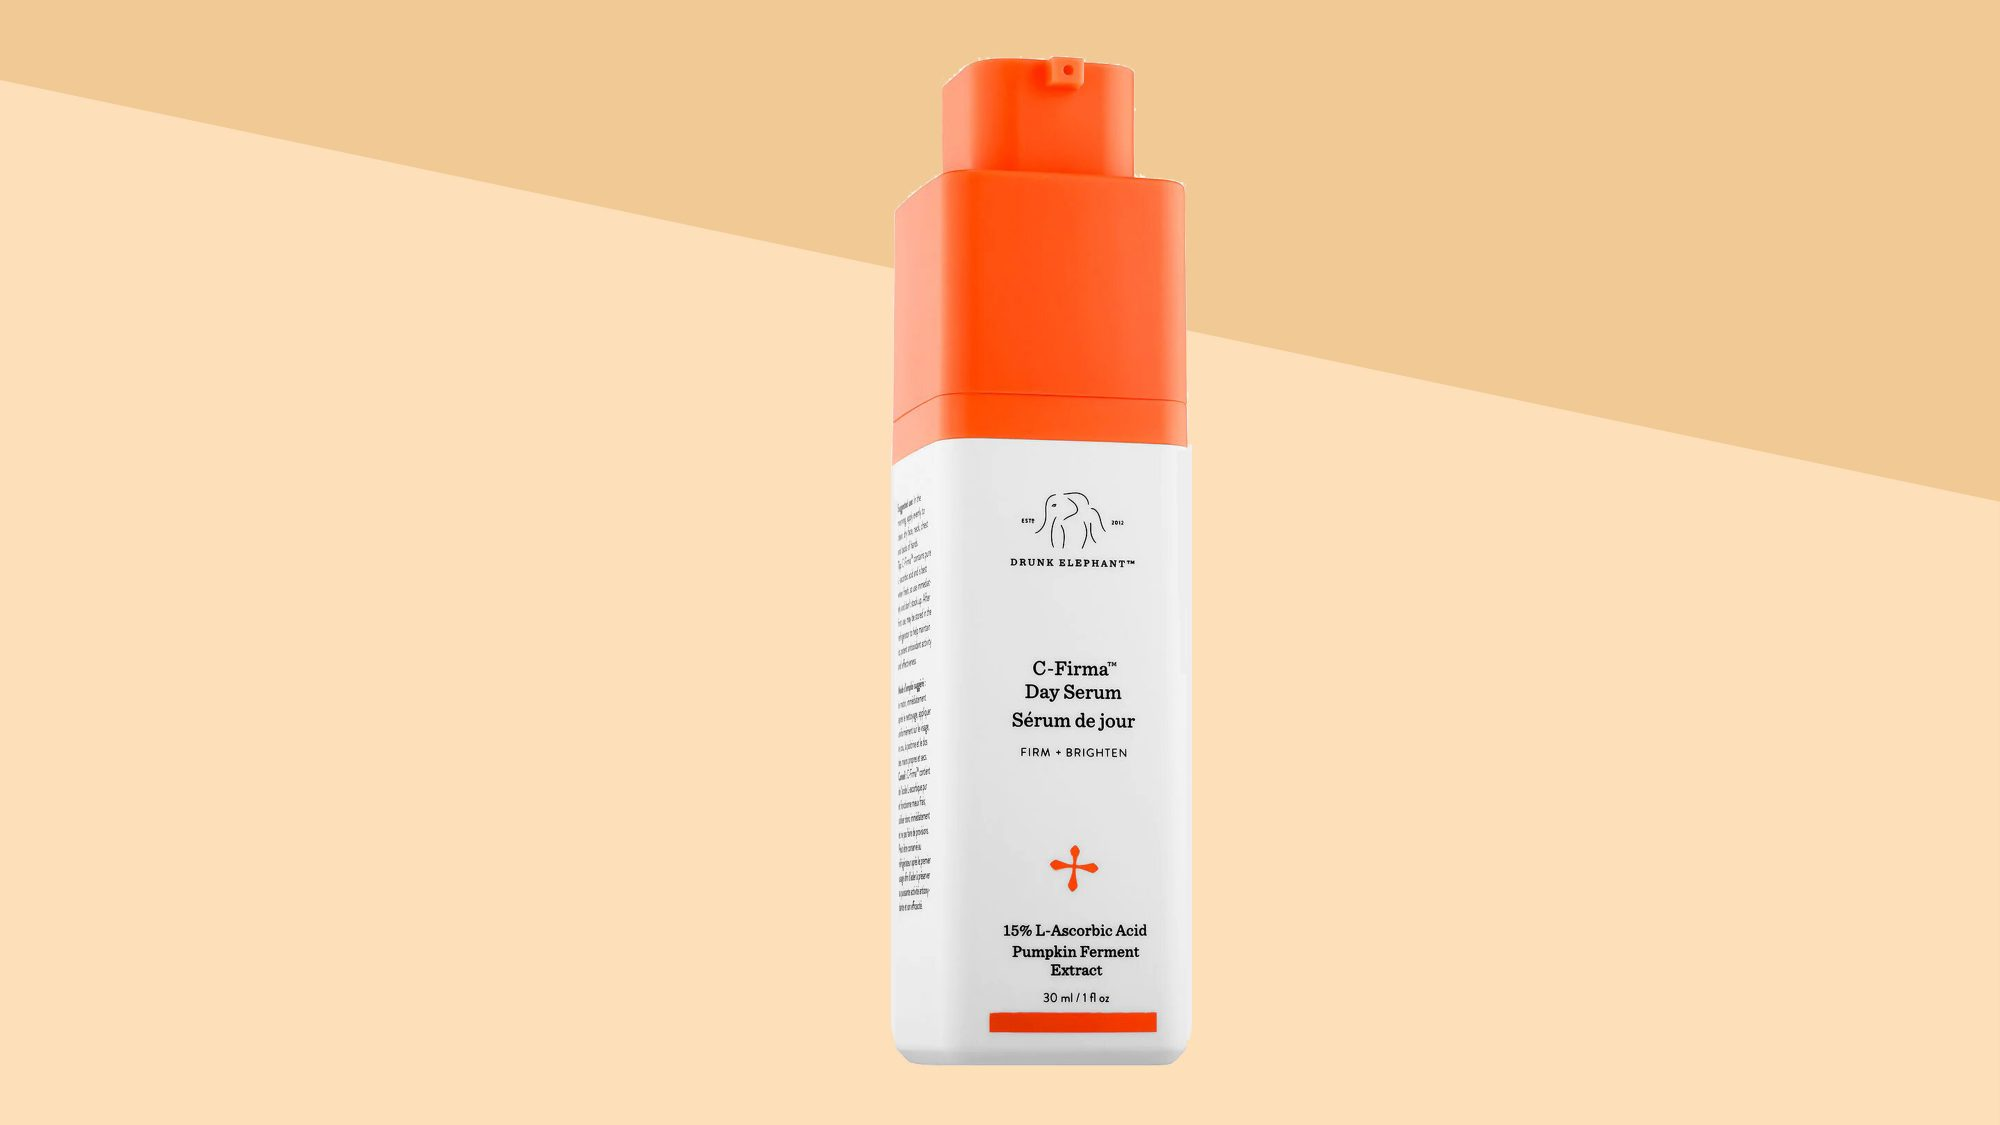 Drunk Elephant C-Firma Vitamin C Day Serum Tout